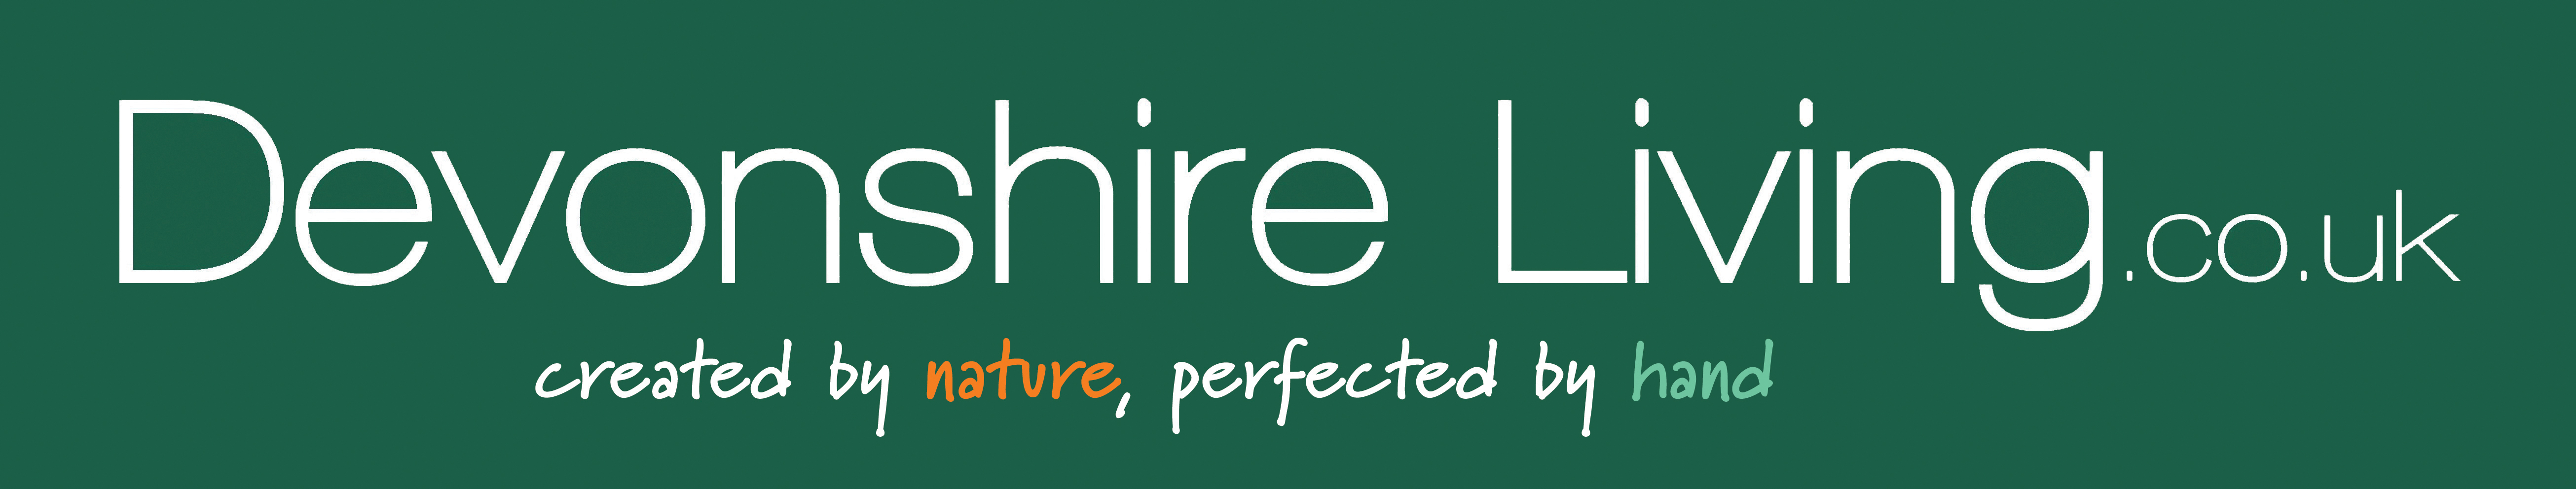 Devonshire Living, Customer Services Administrator